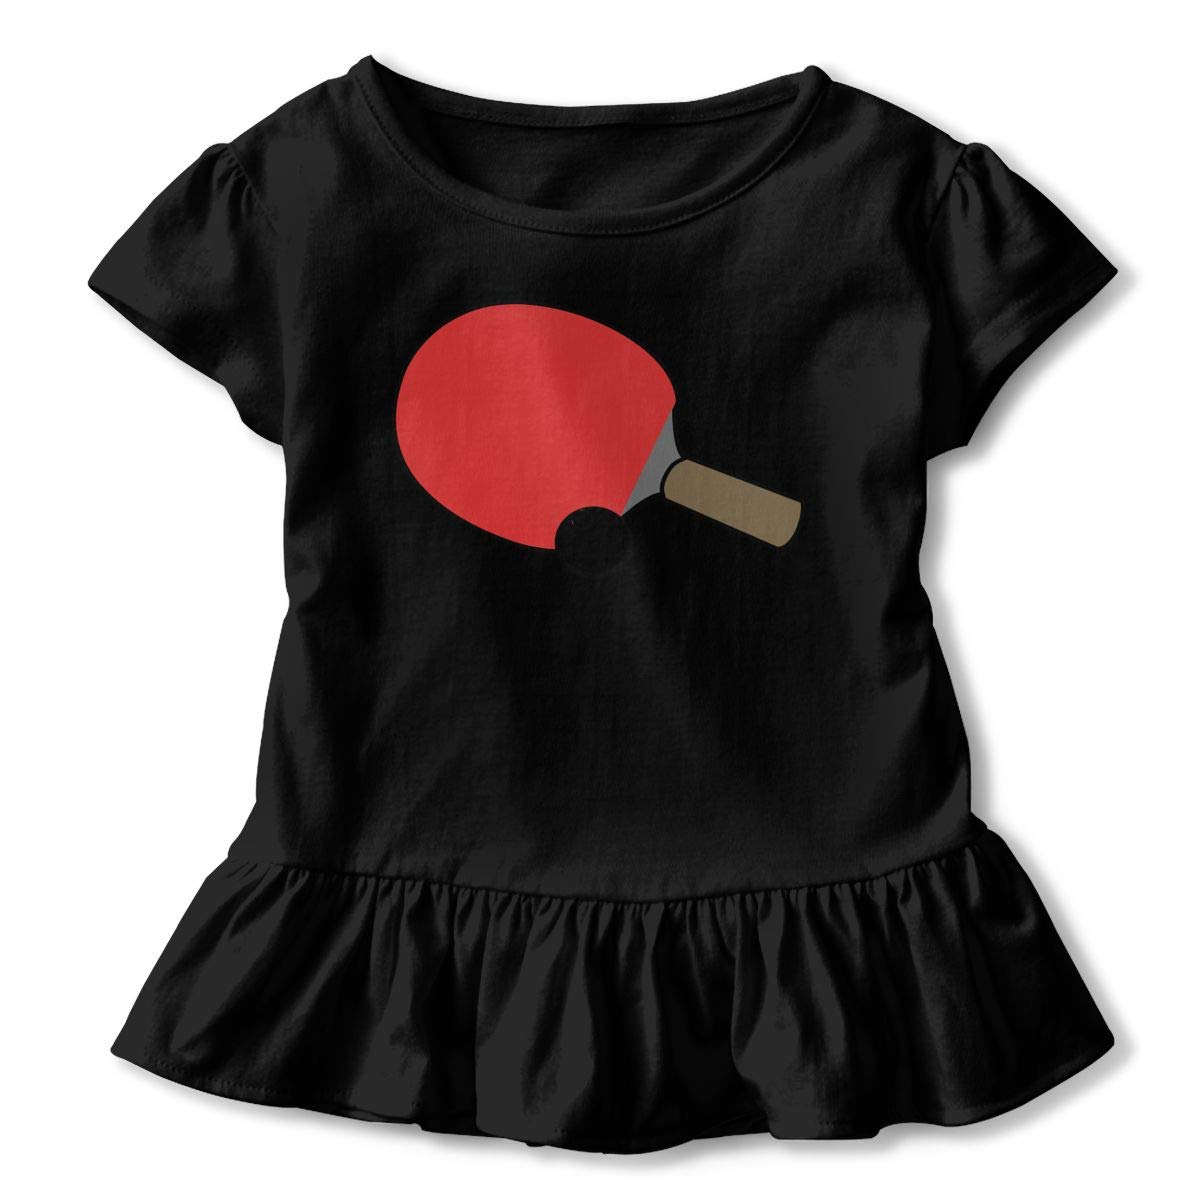 Britain American Heart Flags Baby Girls Short Sleeve Ruffles T-Shirt Tops 2-Pack Cotton Tee